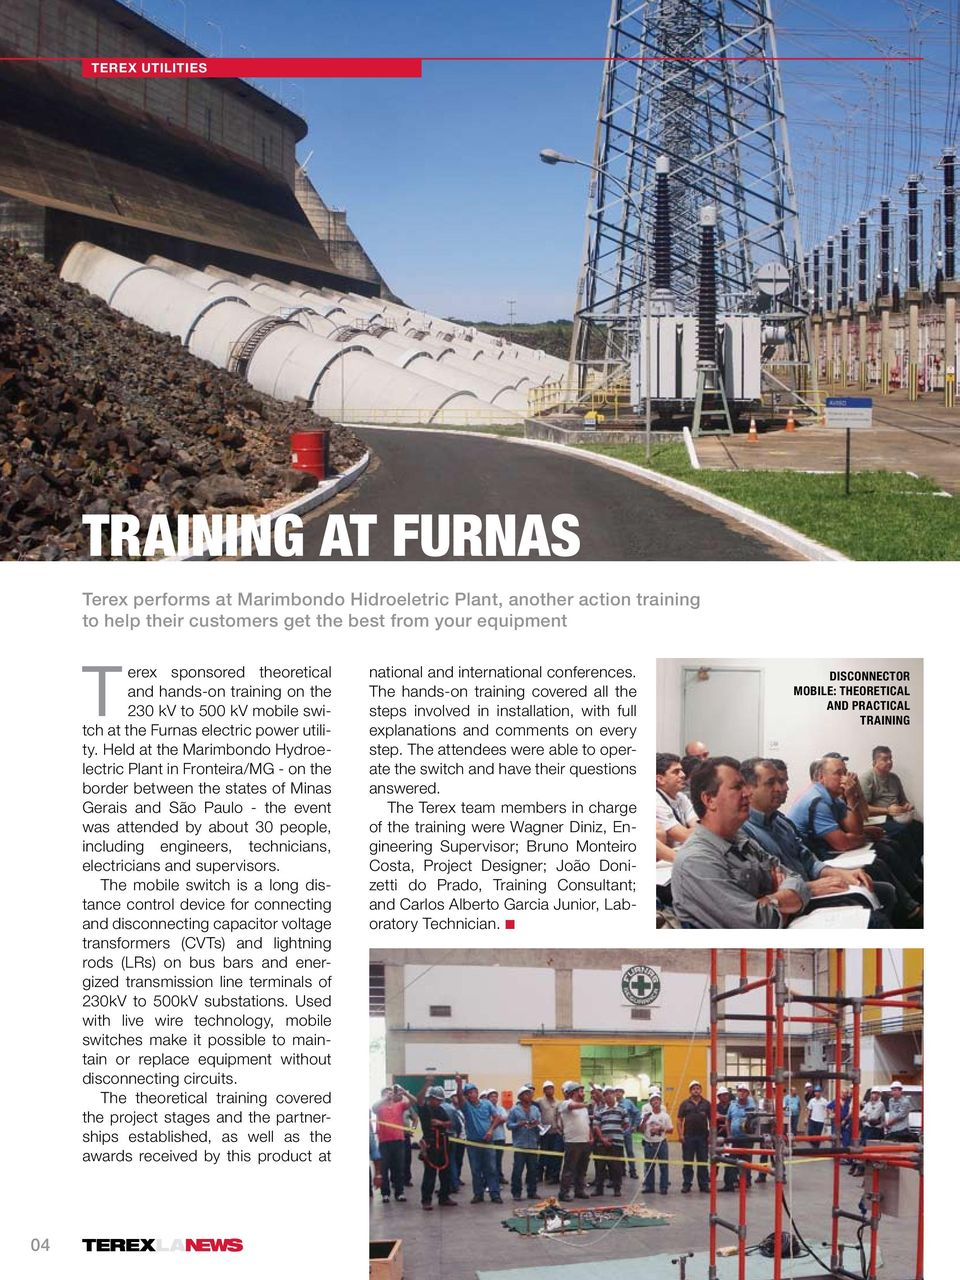 Held at the Marimbondo Hydroelectric Plant in Fronteira/MG - on the border between the states of Minas Gerais and São Paulo - the event was attended by about 30 people, including engineers,